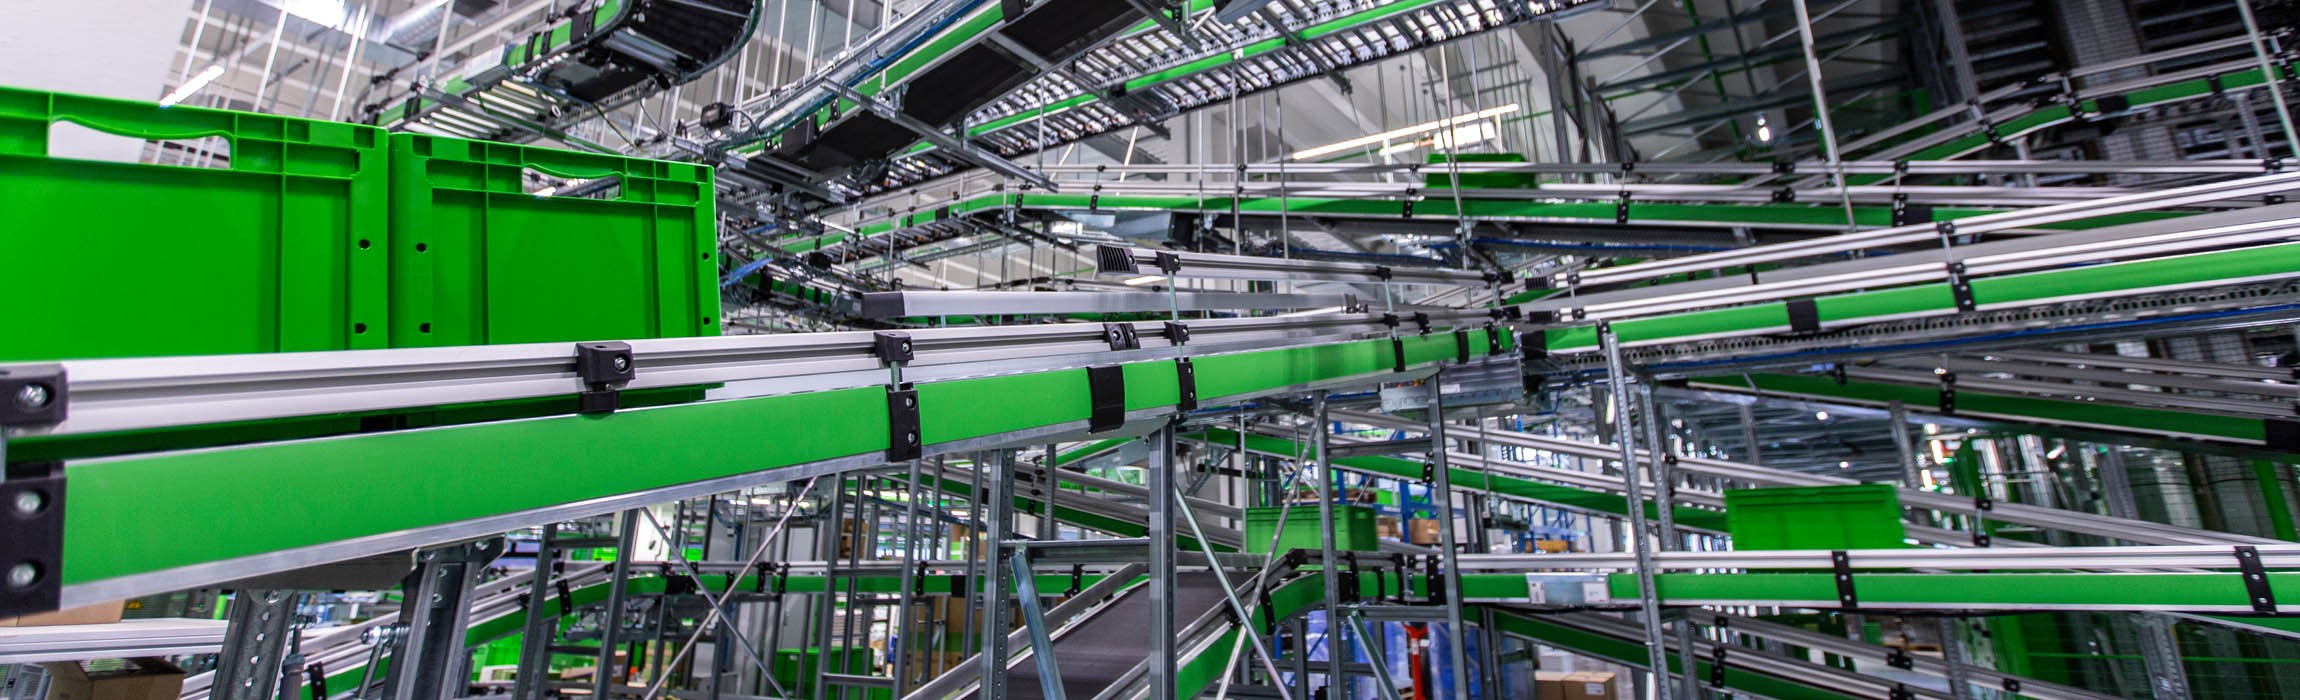 Powerful combination of an automatic mini-load warehouse and a shuttle system.